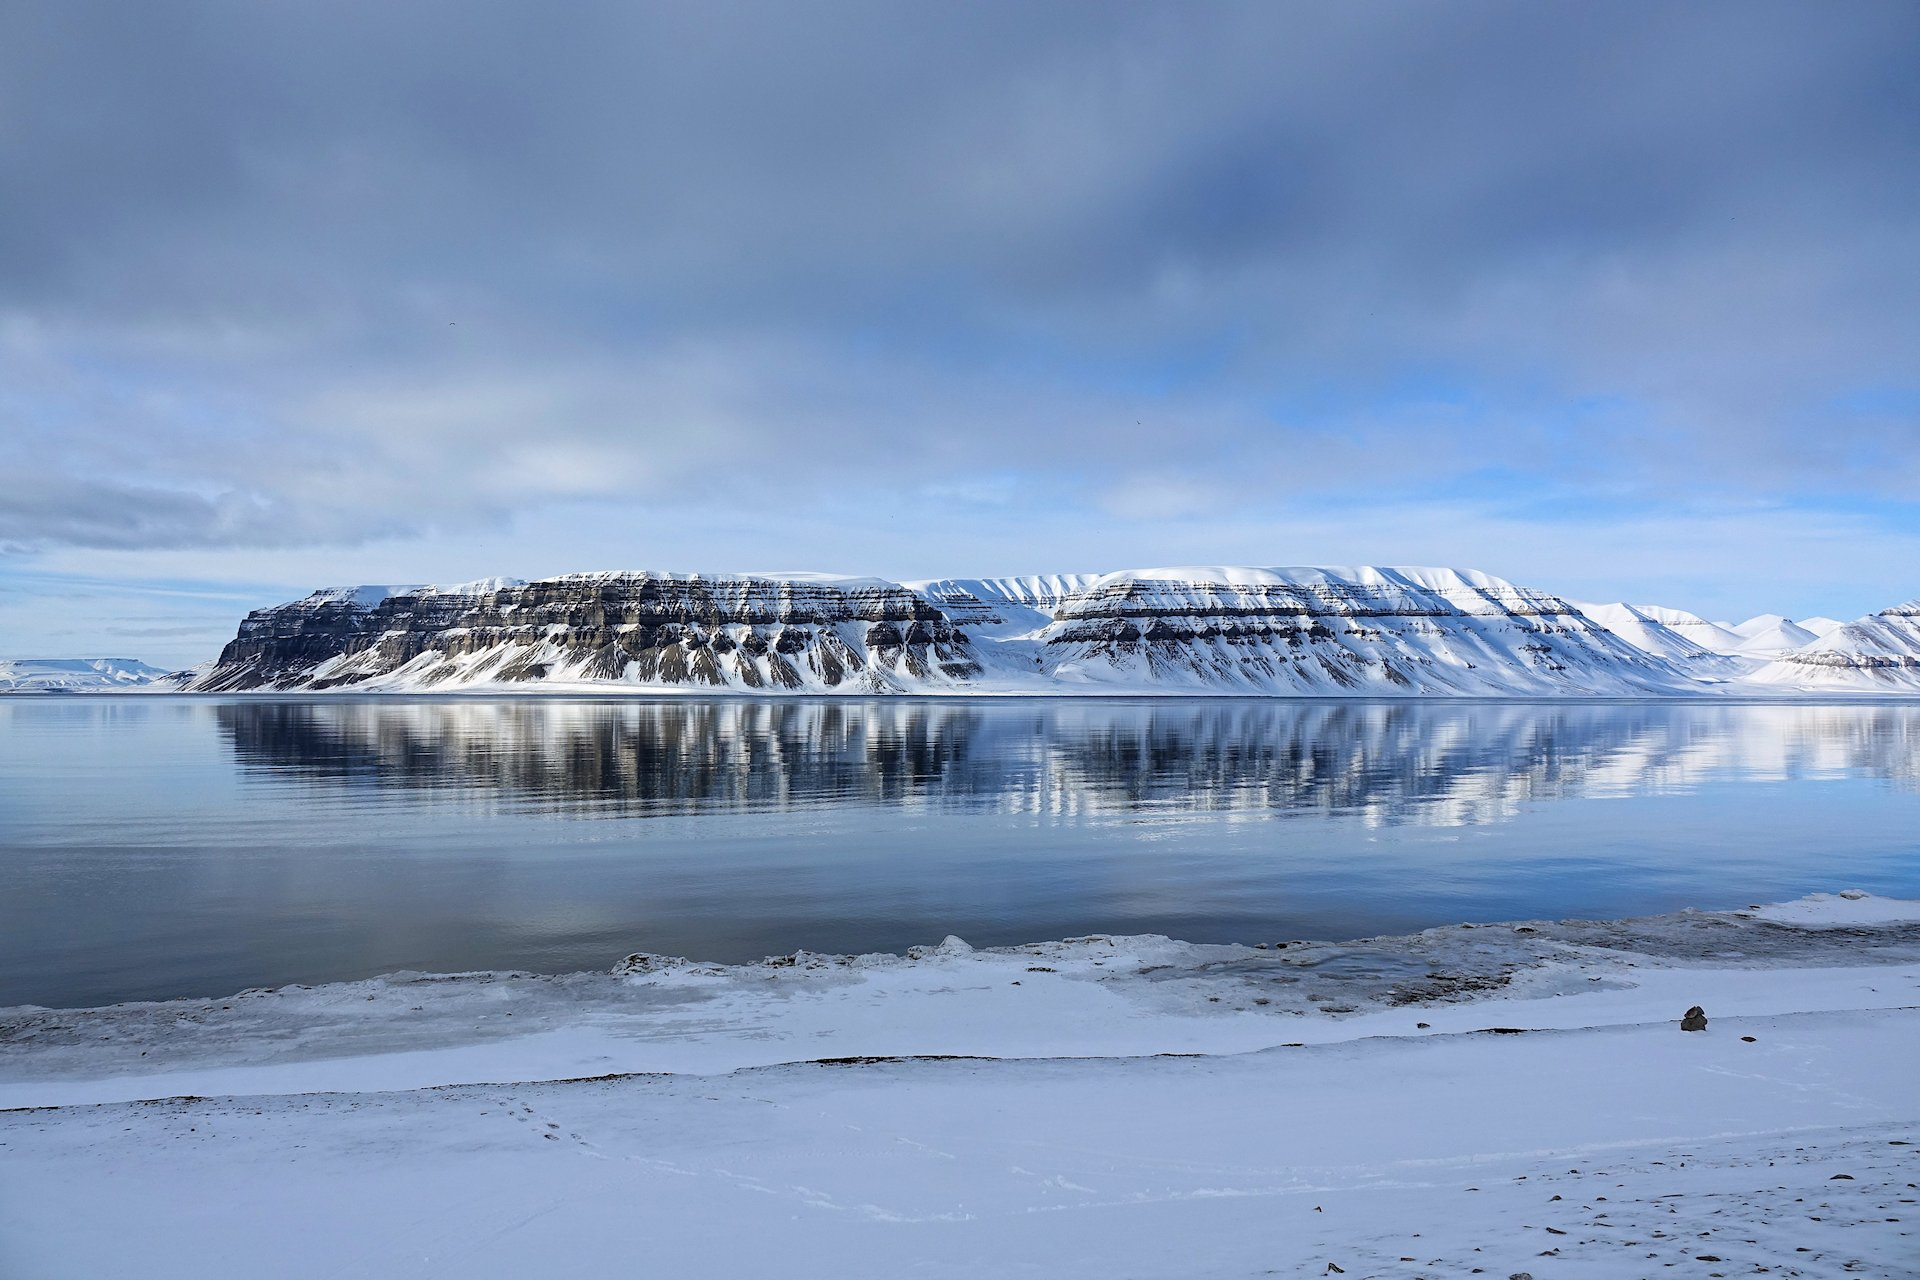 Photo of Templet mountain at Tempelfjorden, Svalbard, seen from Fredheim.